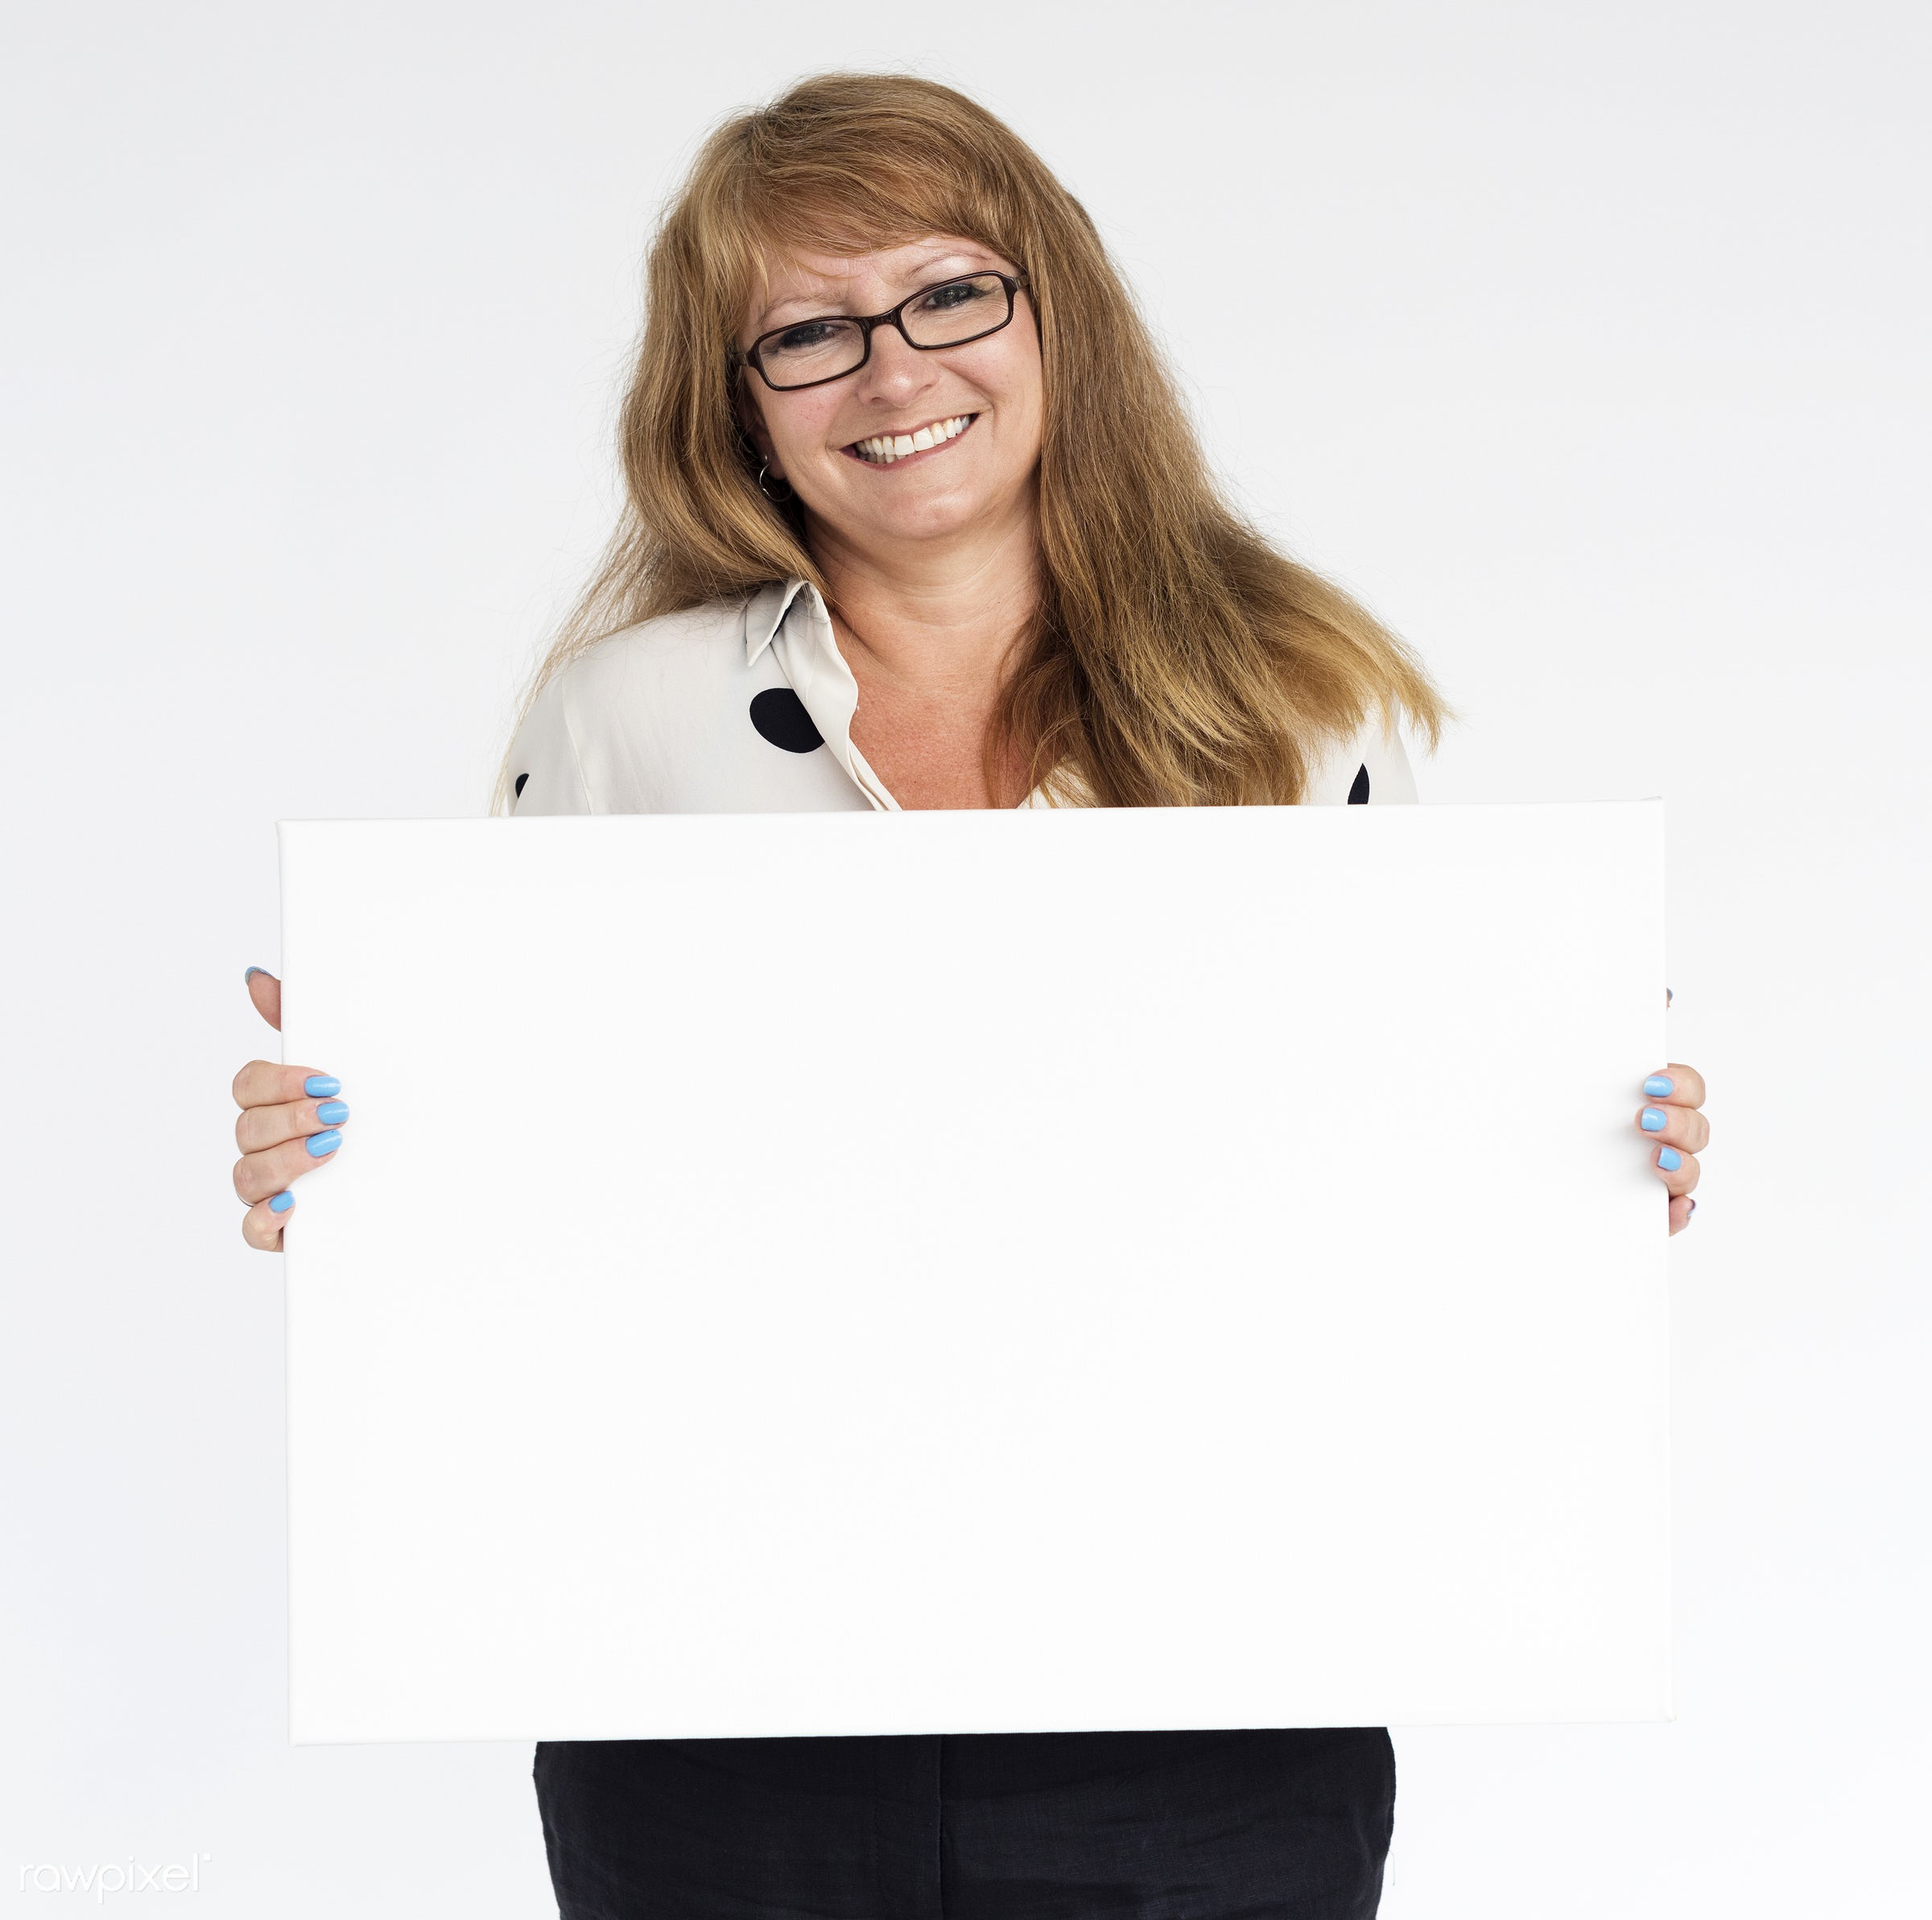 studio, person, holding, show, people, displaying, caucasian, placard, woman, empty, smile, positive, cheerful, smiling,...